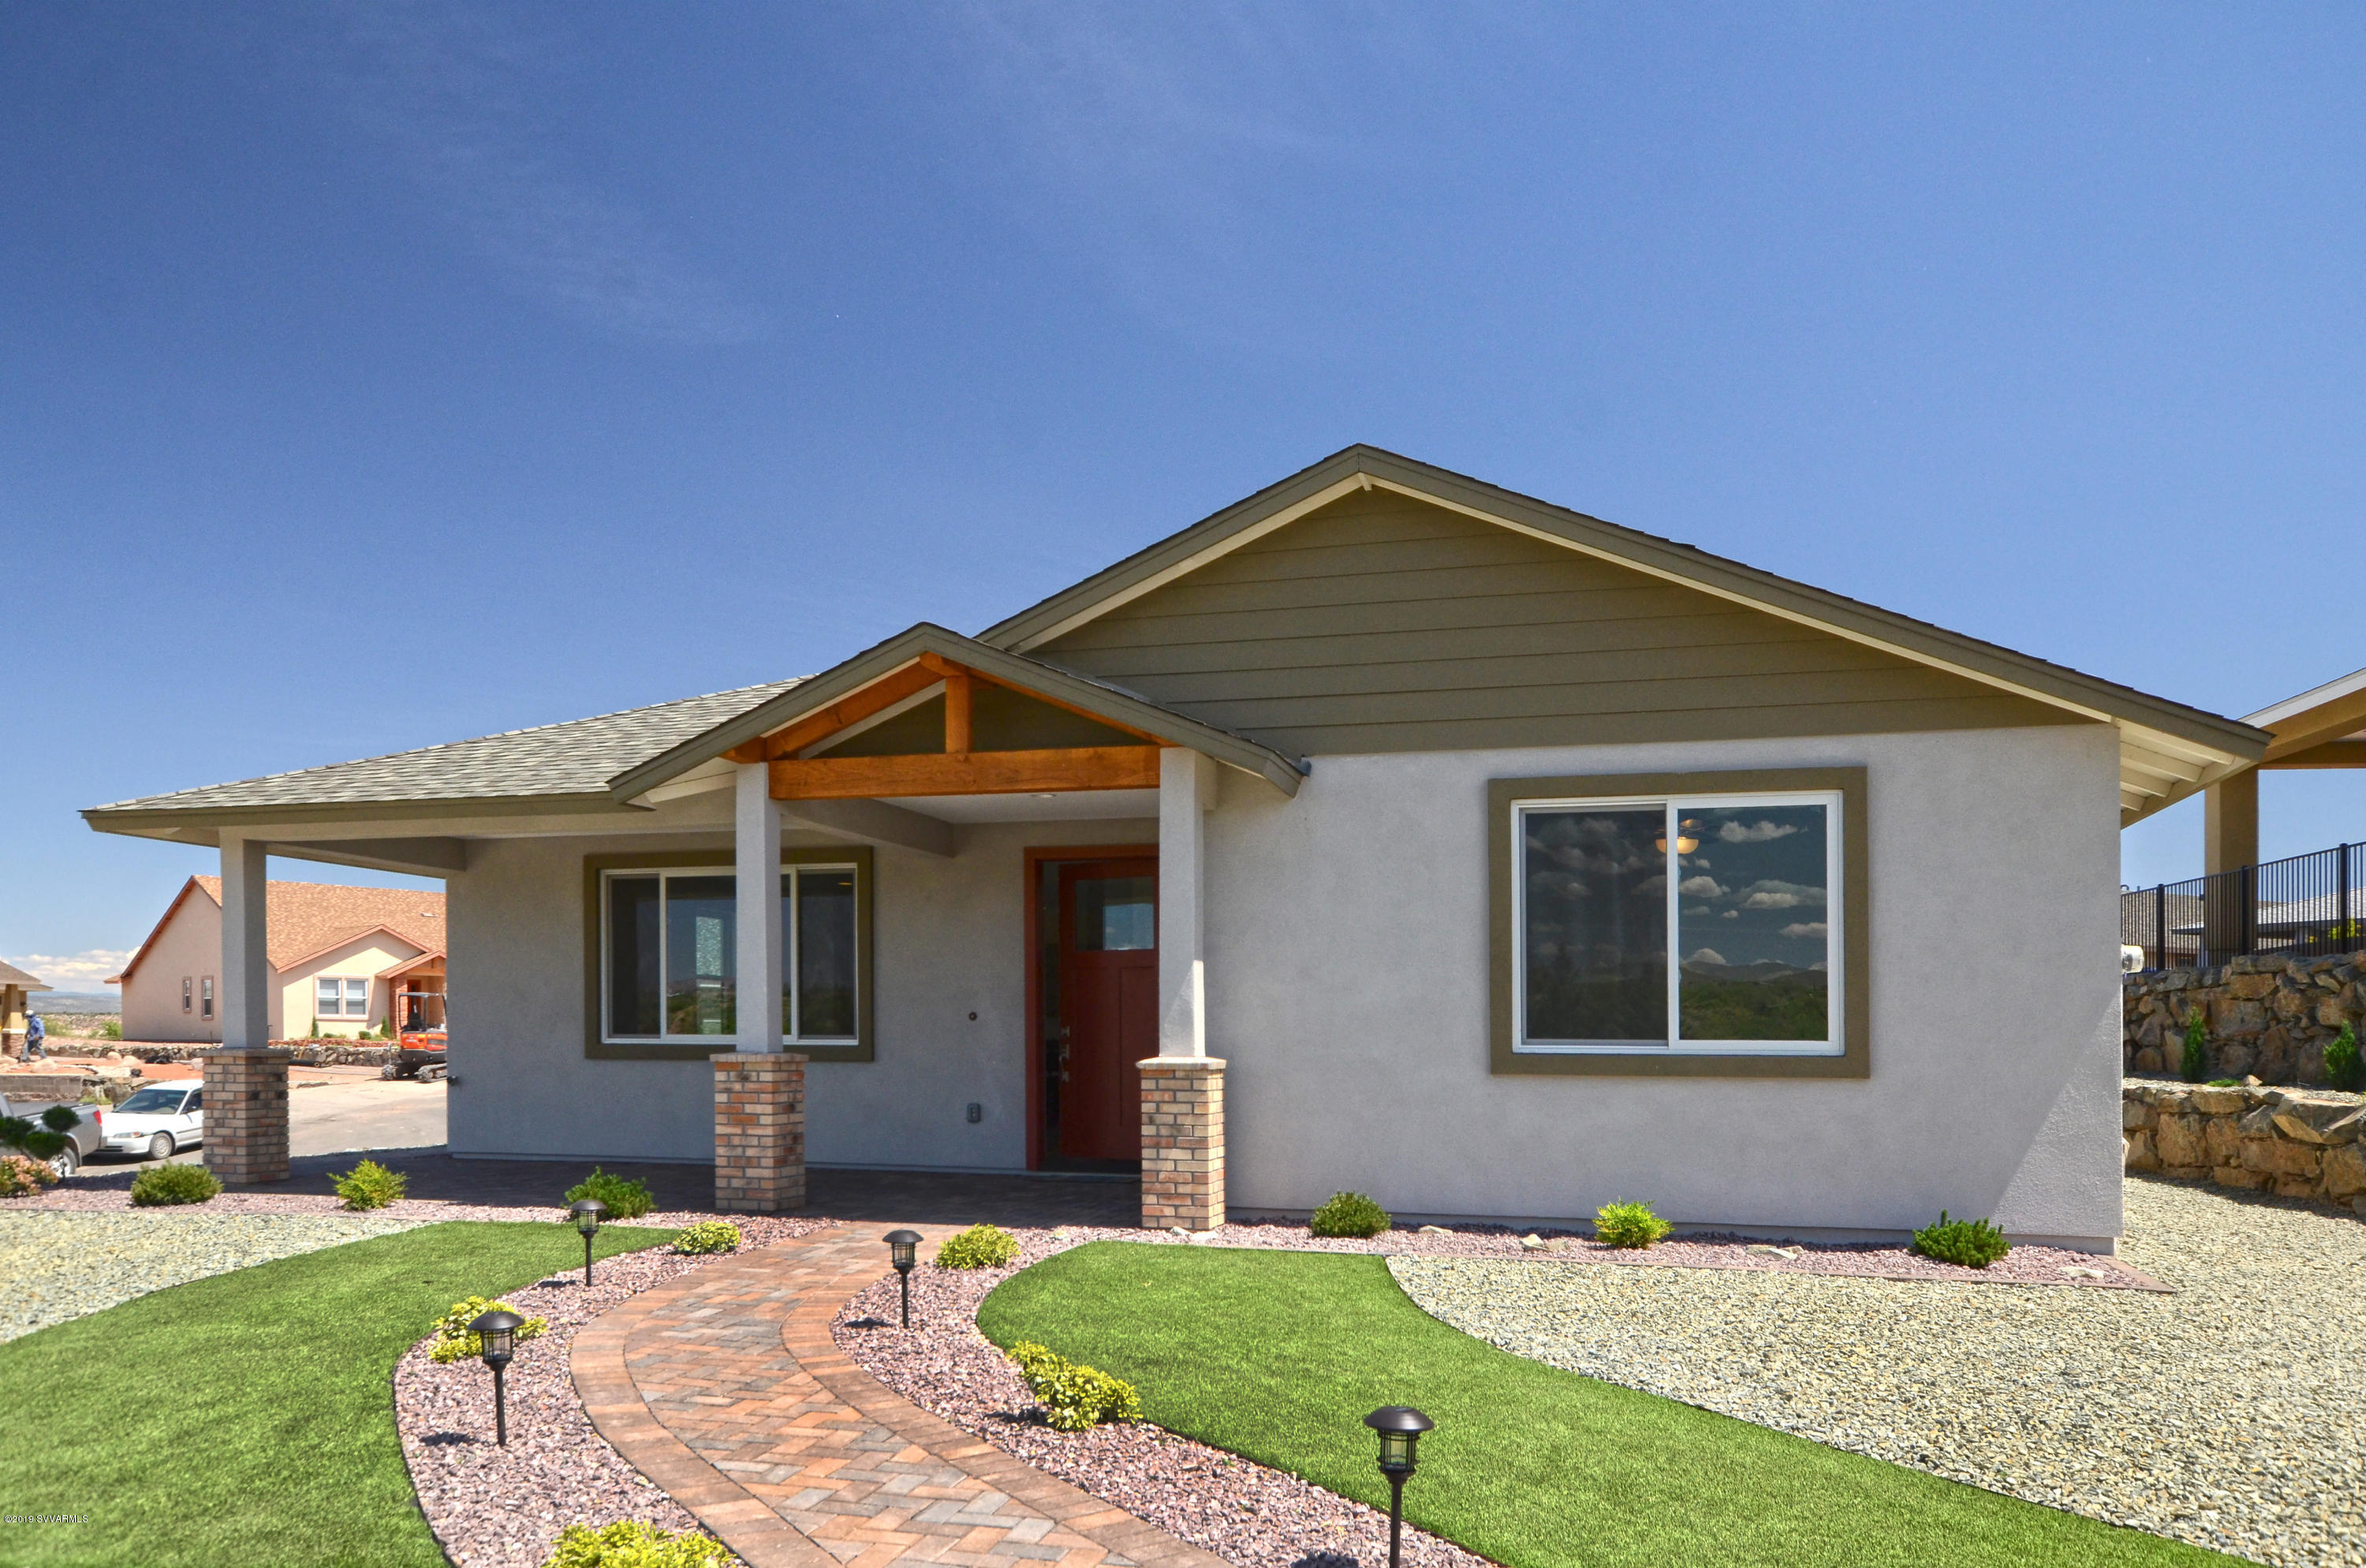 465 Kindra Heights Rd Cottonwood, AZ 86326